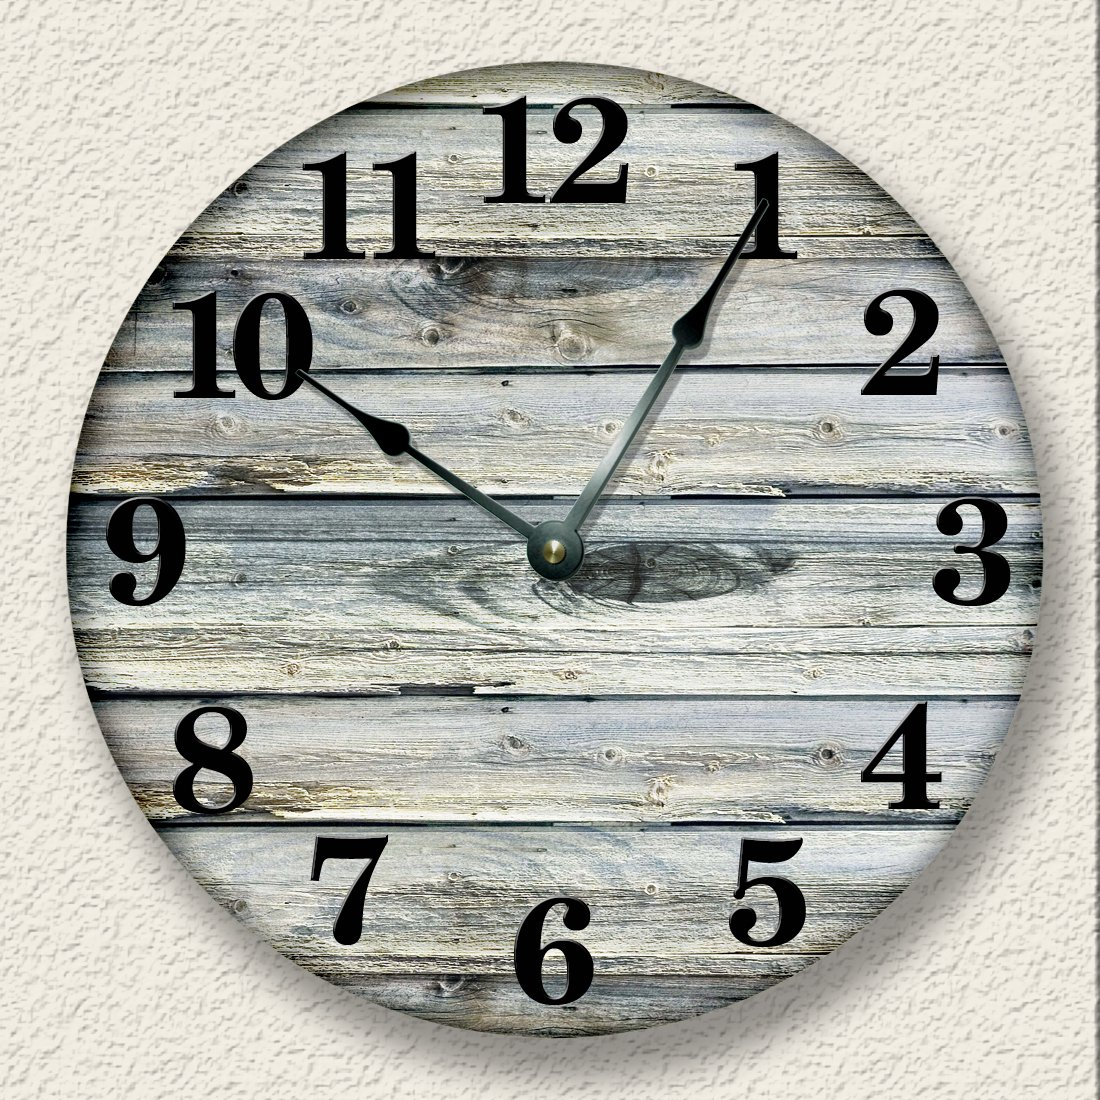 Amazon Rustic Wall Clock Weathered Boards Image Beach Sand Tan Cabin Country Decor Home Kitchen